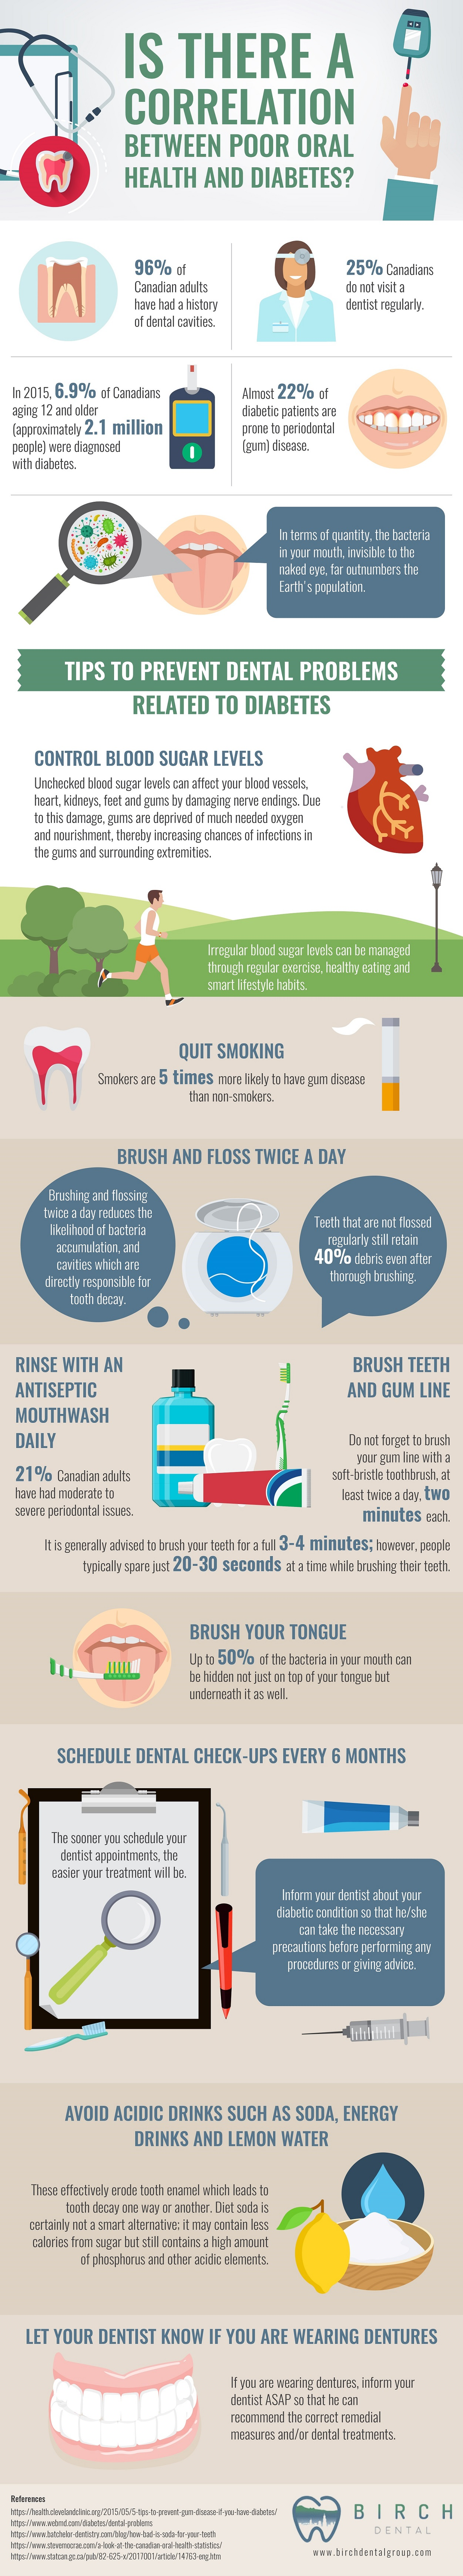 How to Prevent Diabetes Related Dental Health Problems - Infographic